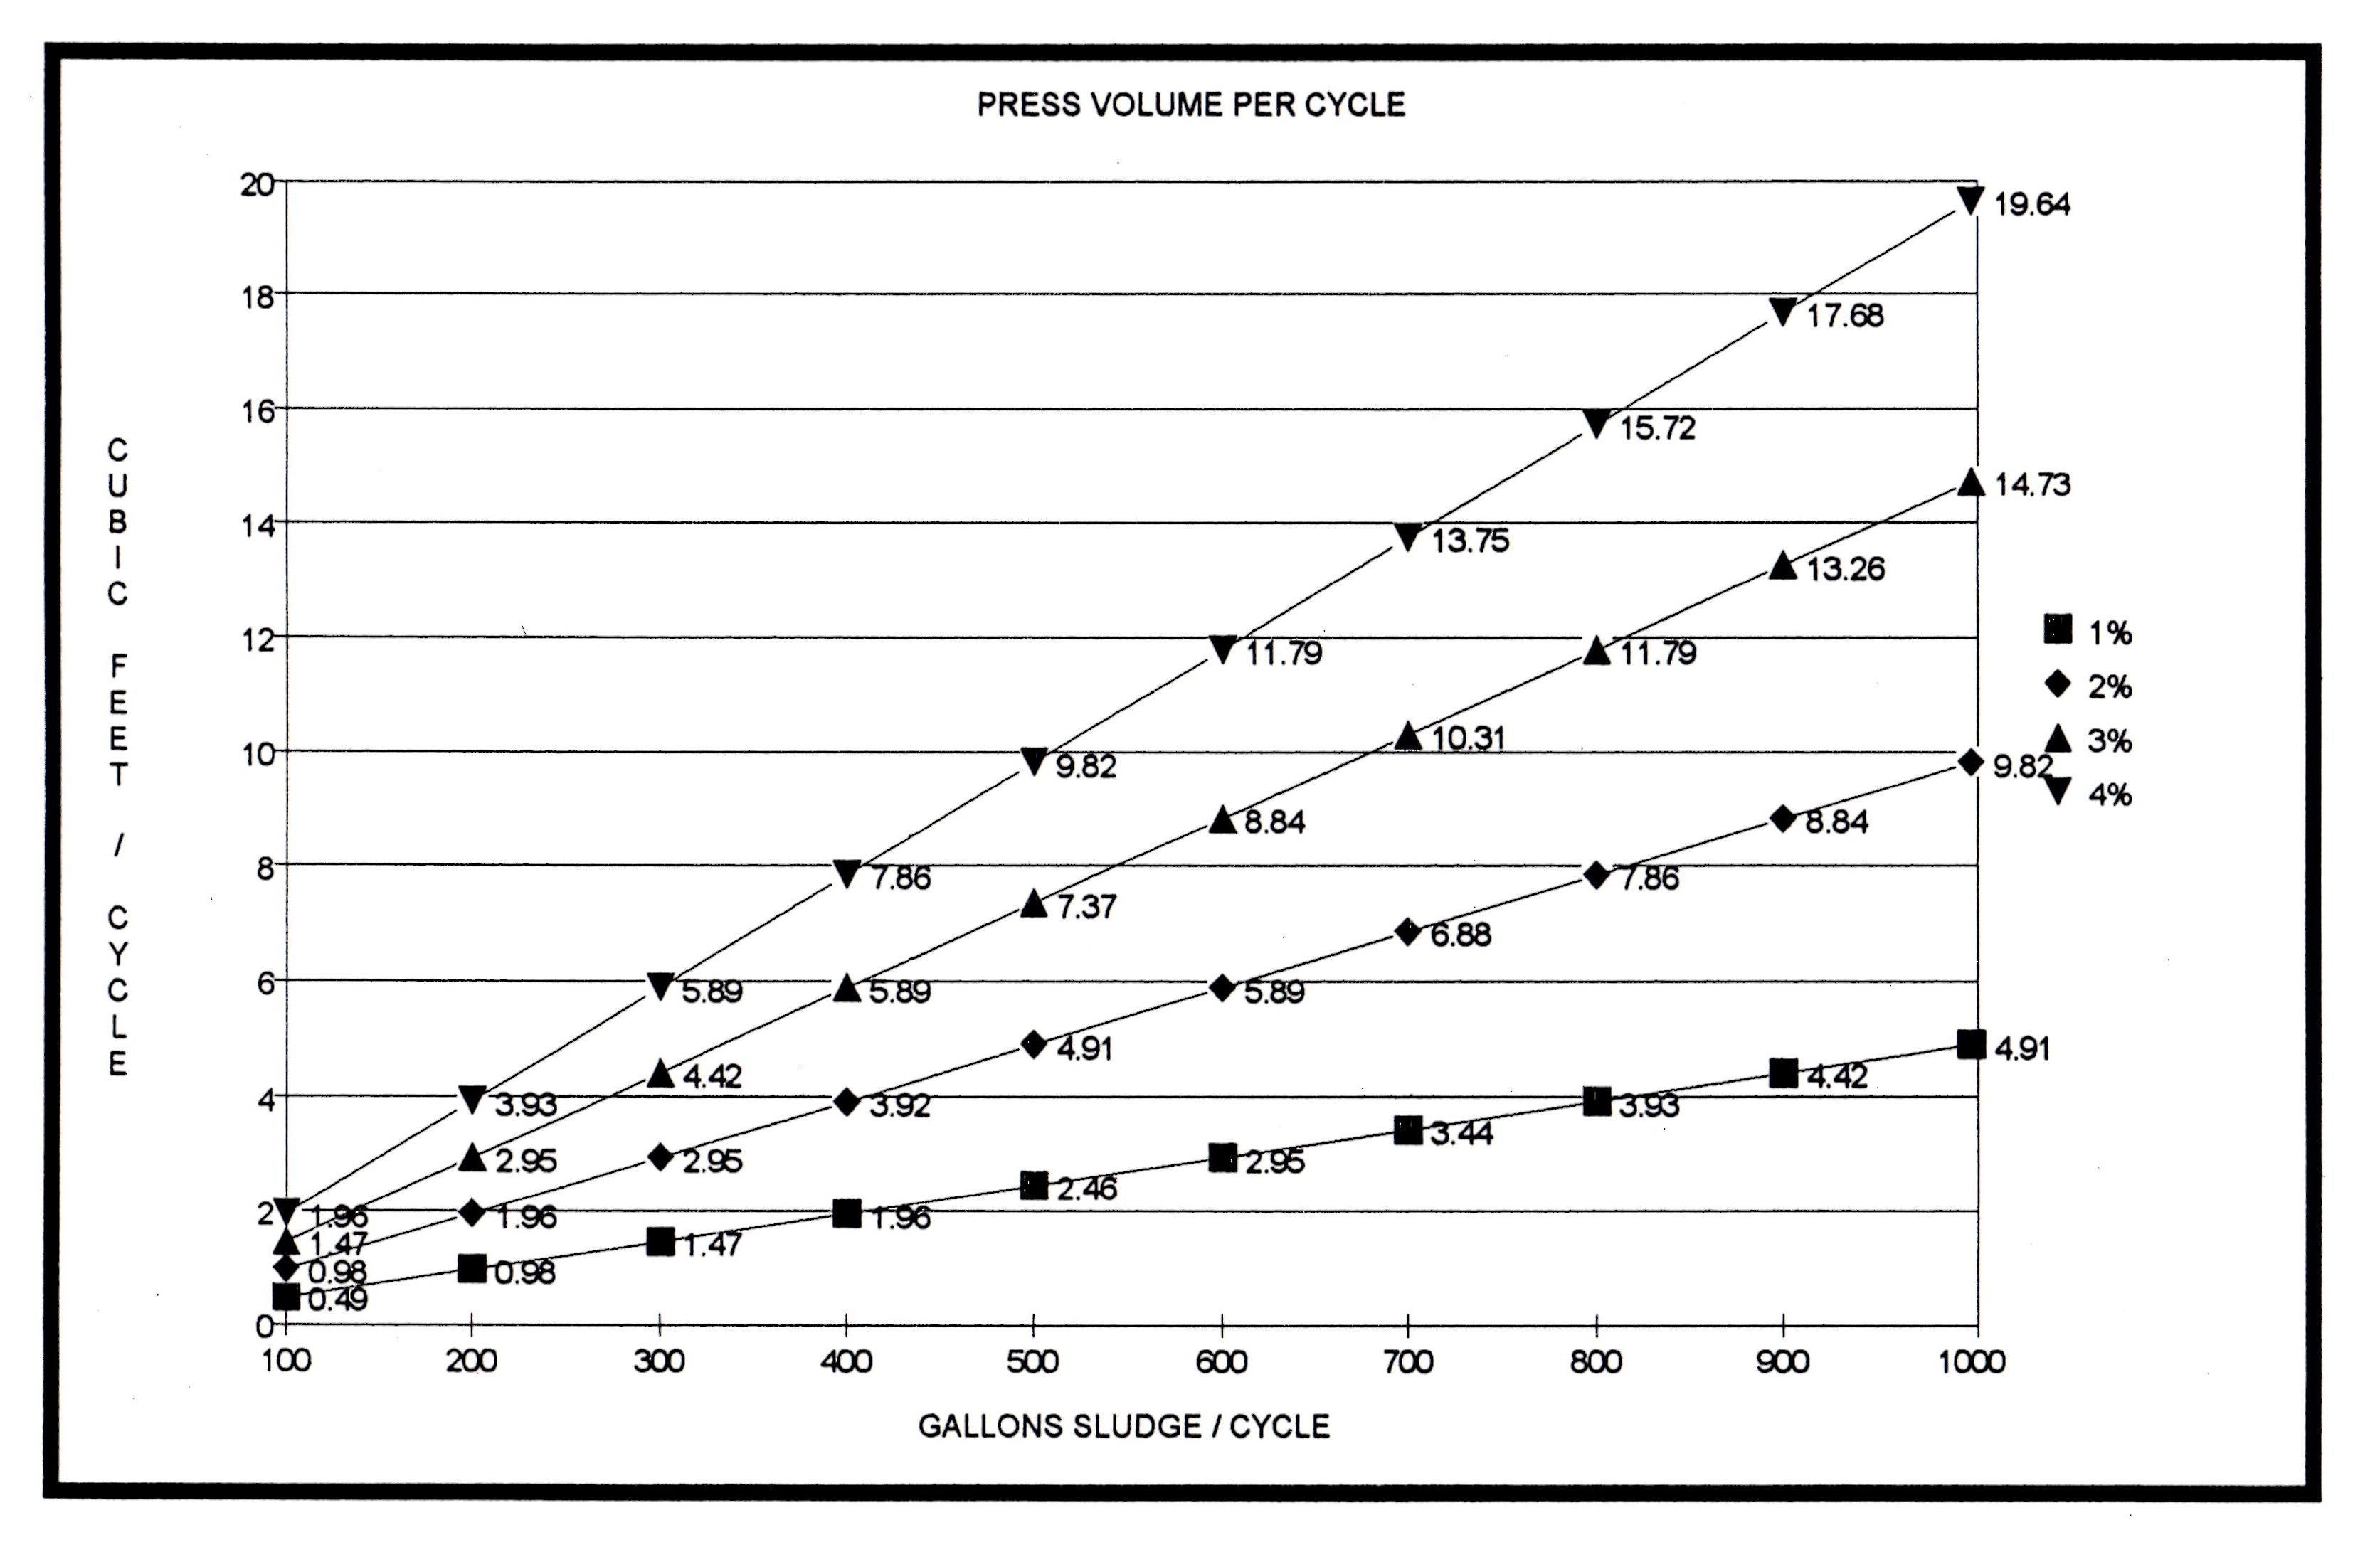 Filter Press Volume per Cycle for Thin Slurries